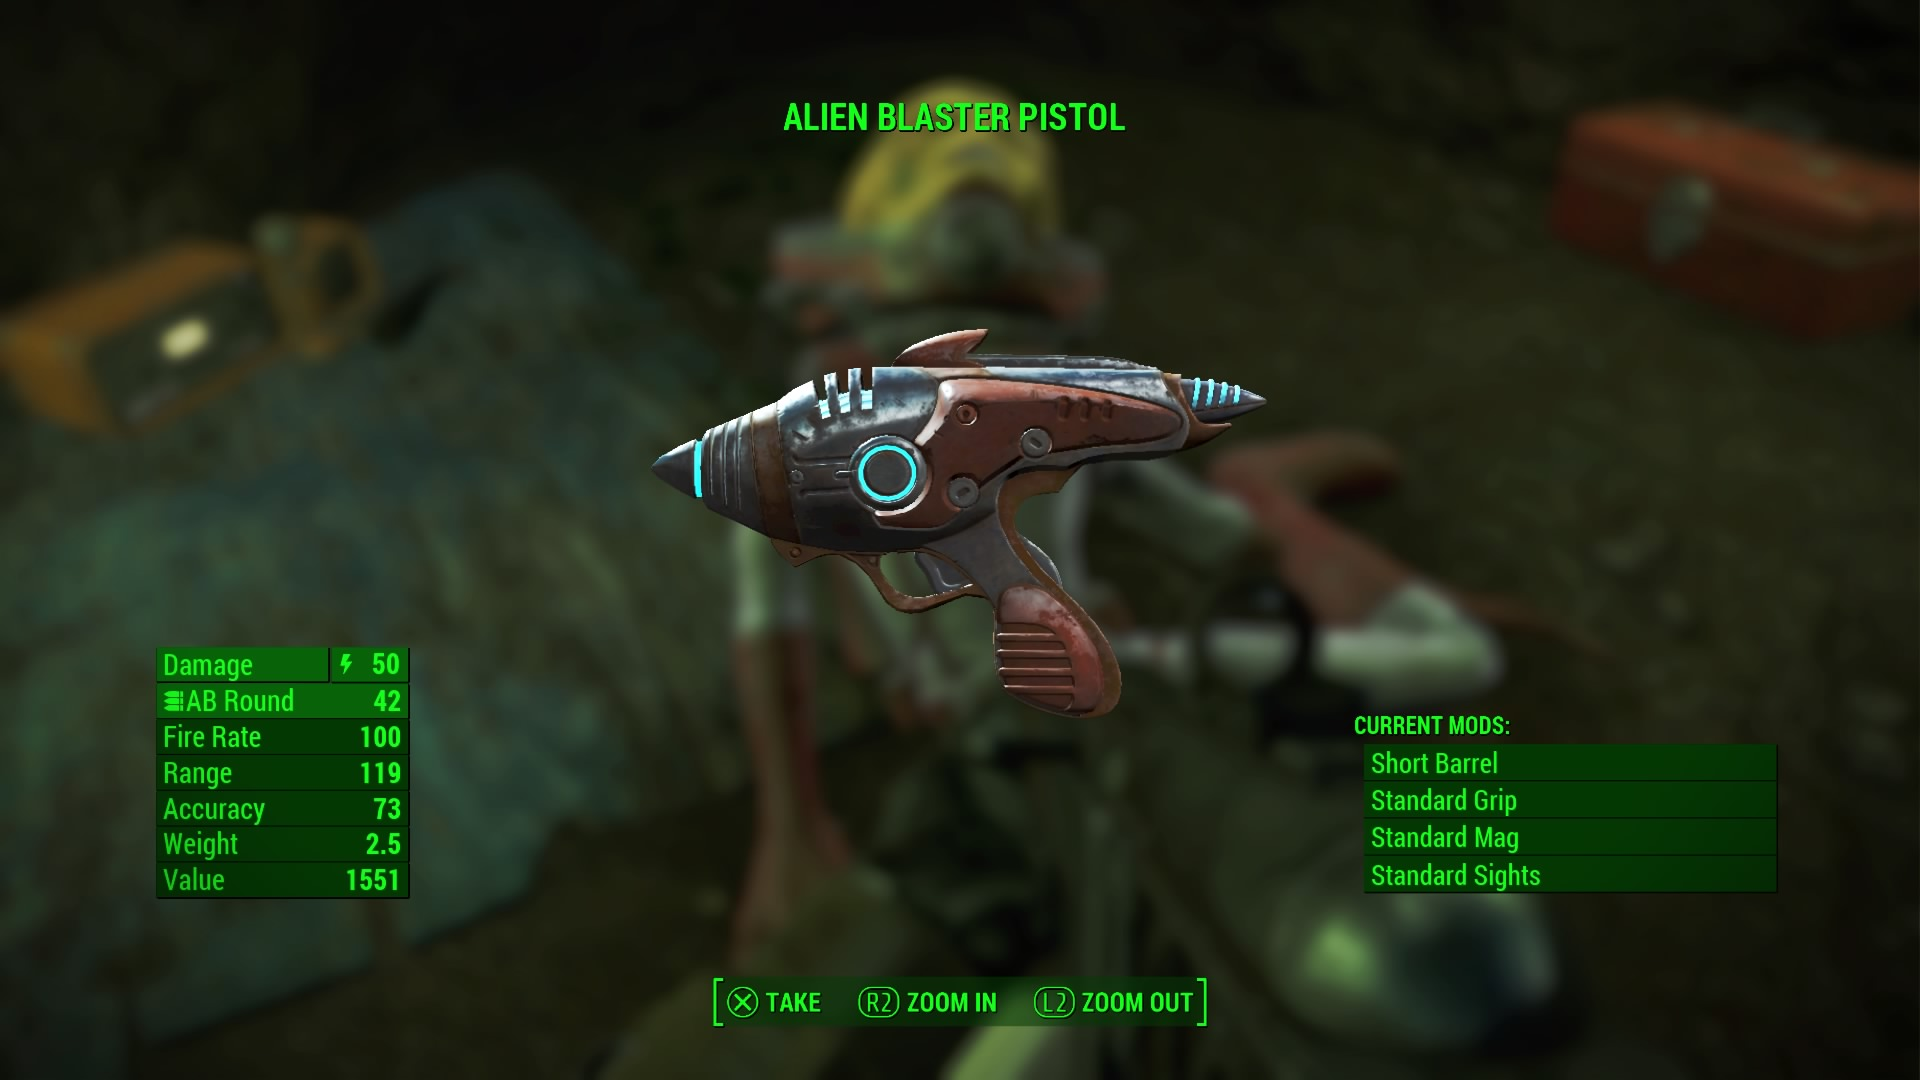 fallout 3 alien blaster map location with How To Get The Alien Blaster In Fallout 4 on Fallout 4 Power Armor Locations besides Fallout 4 Alien Blaster Guide in addition Fallout 4 Bobblehead Locations And Associated Perks Guide likewise Showthread also 5 Fallout 4 Weapon Mods You Need To Download.